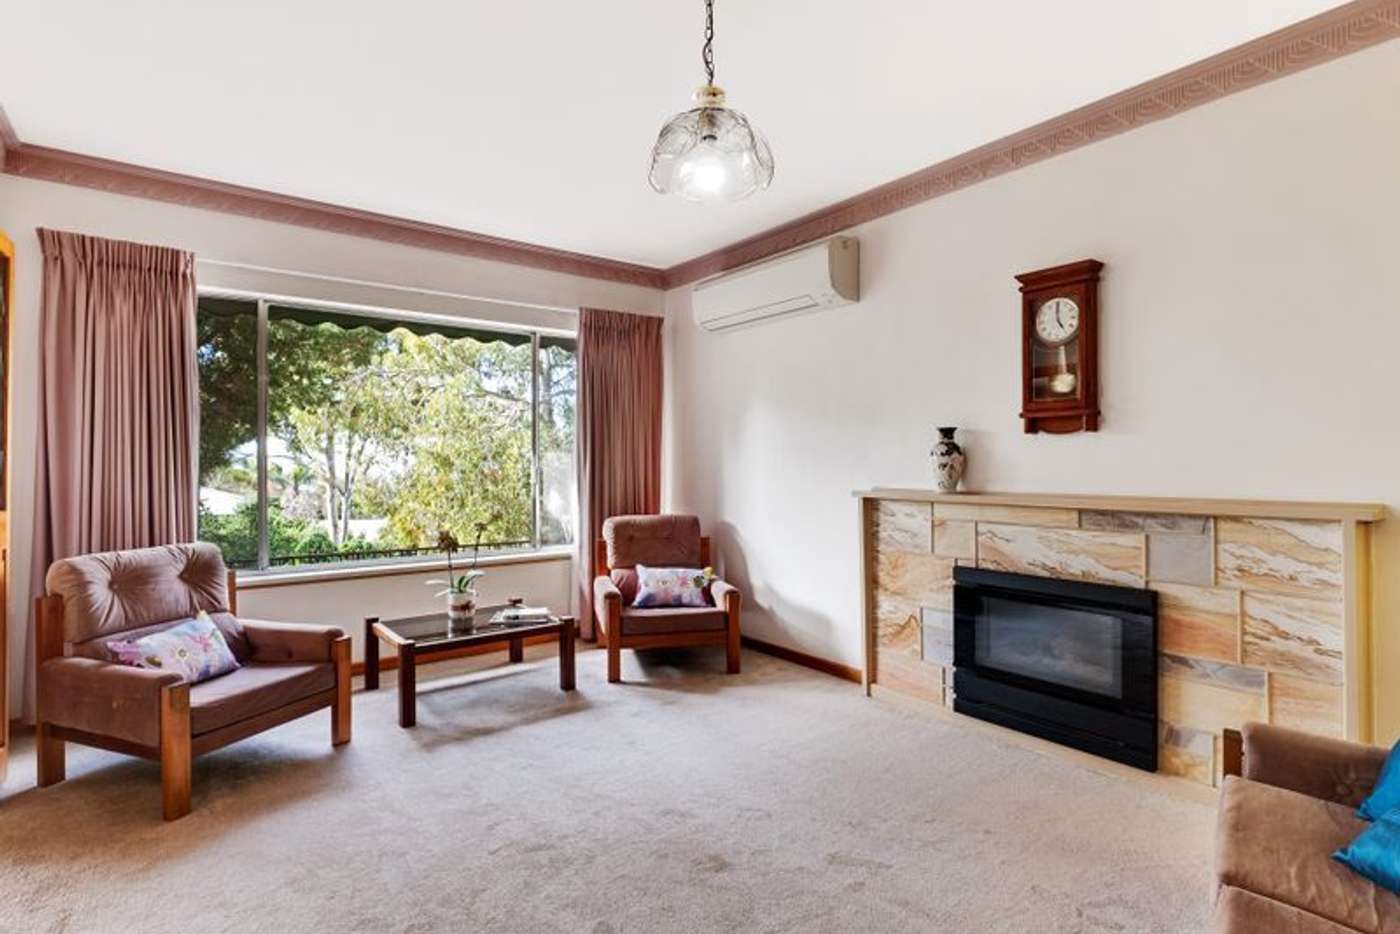 Fifth view of Homely house listing, 2 Kara Road, Seaview Downs SA 5049